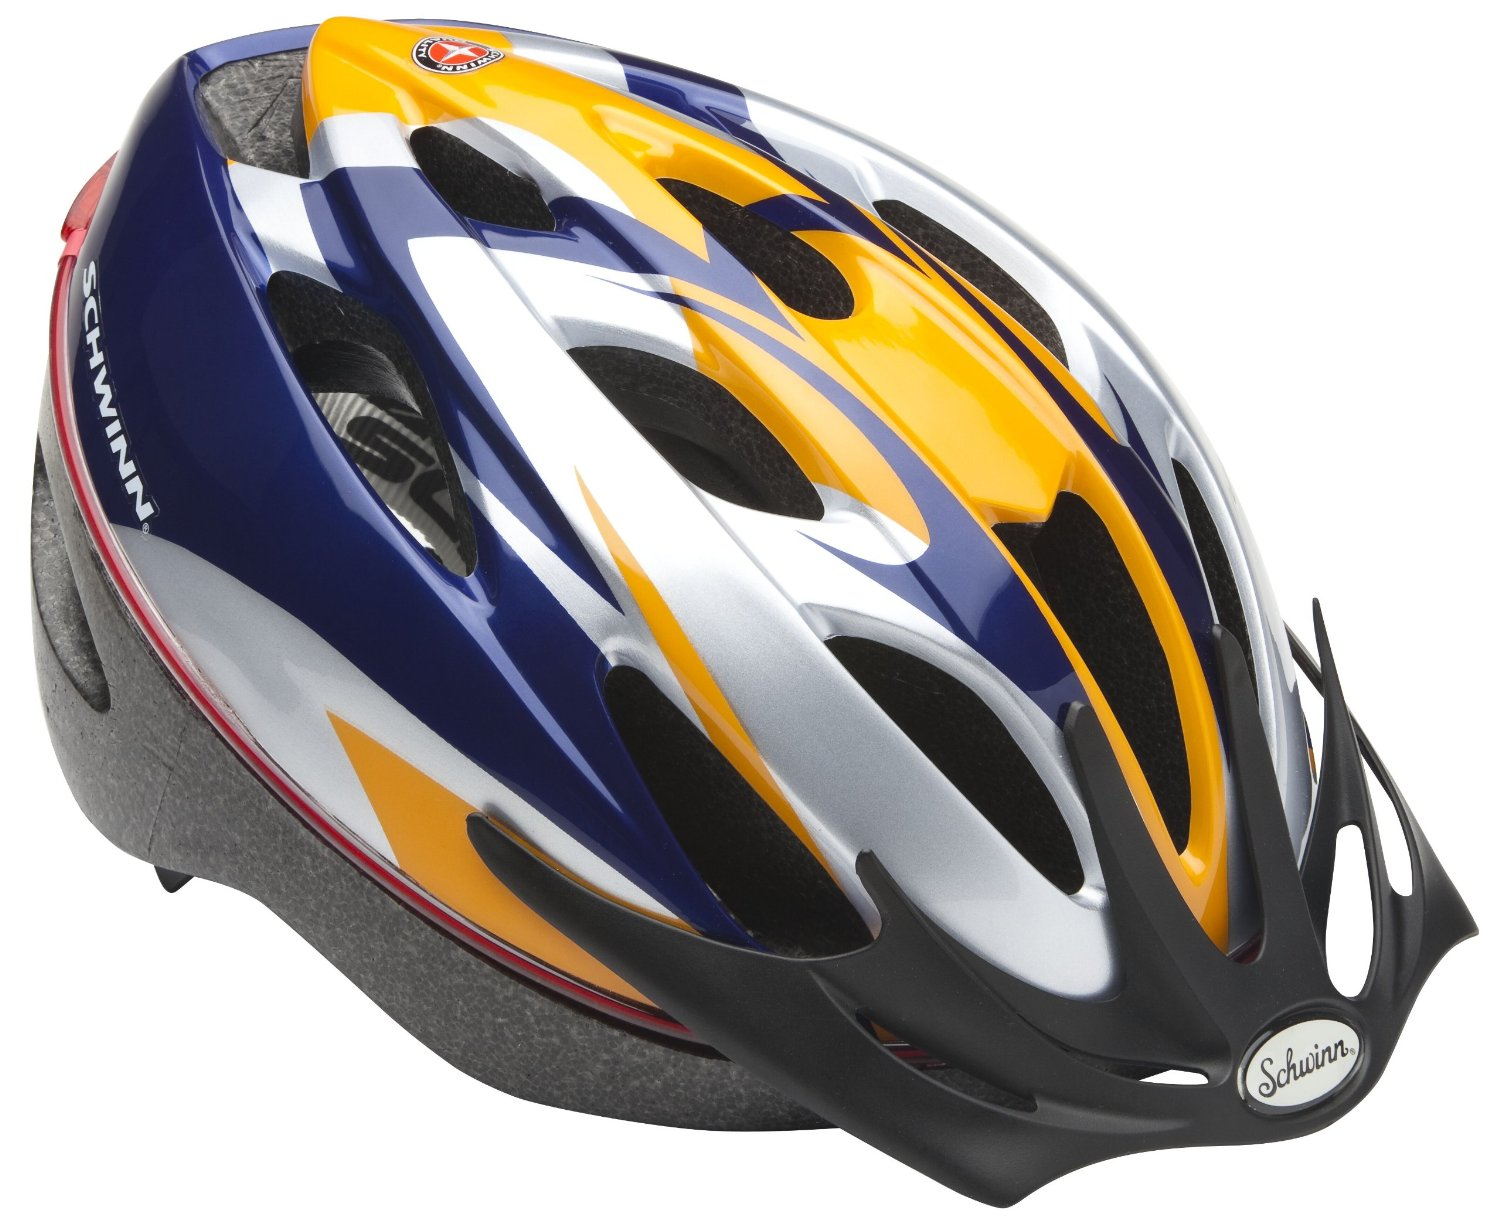 Colors of Schwinn Bicycle Helmets